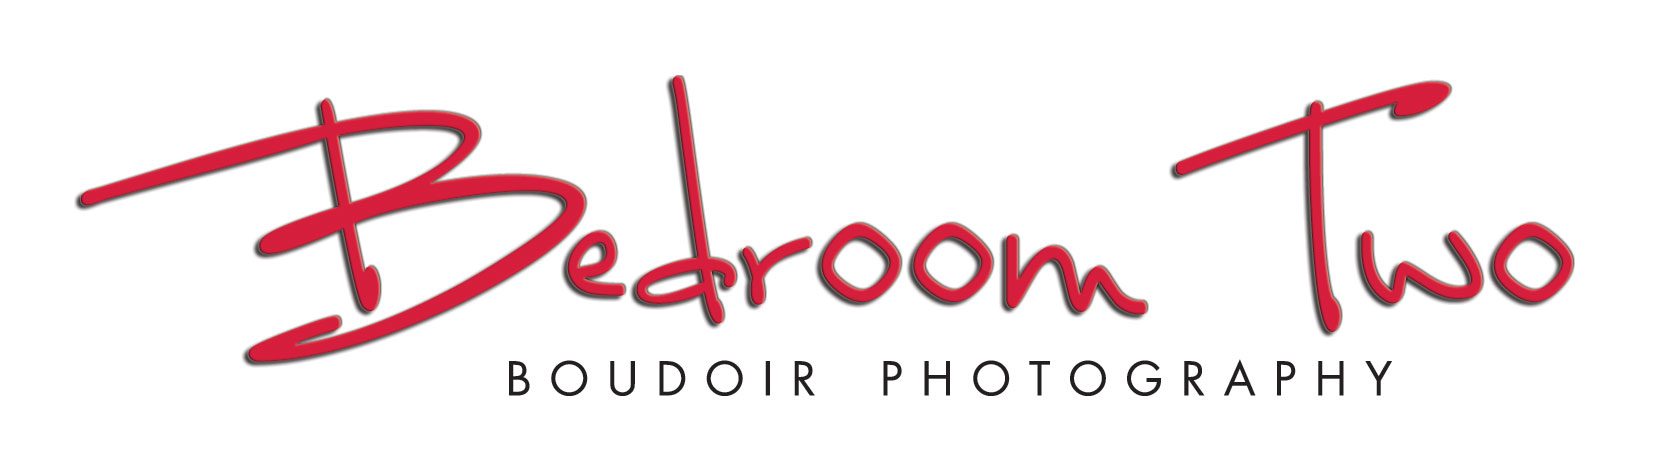 BedroomTwo | Boudoir Photography